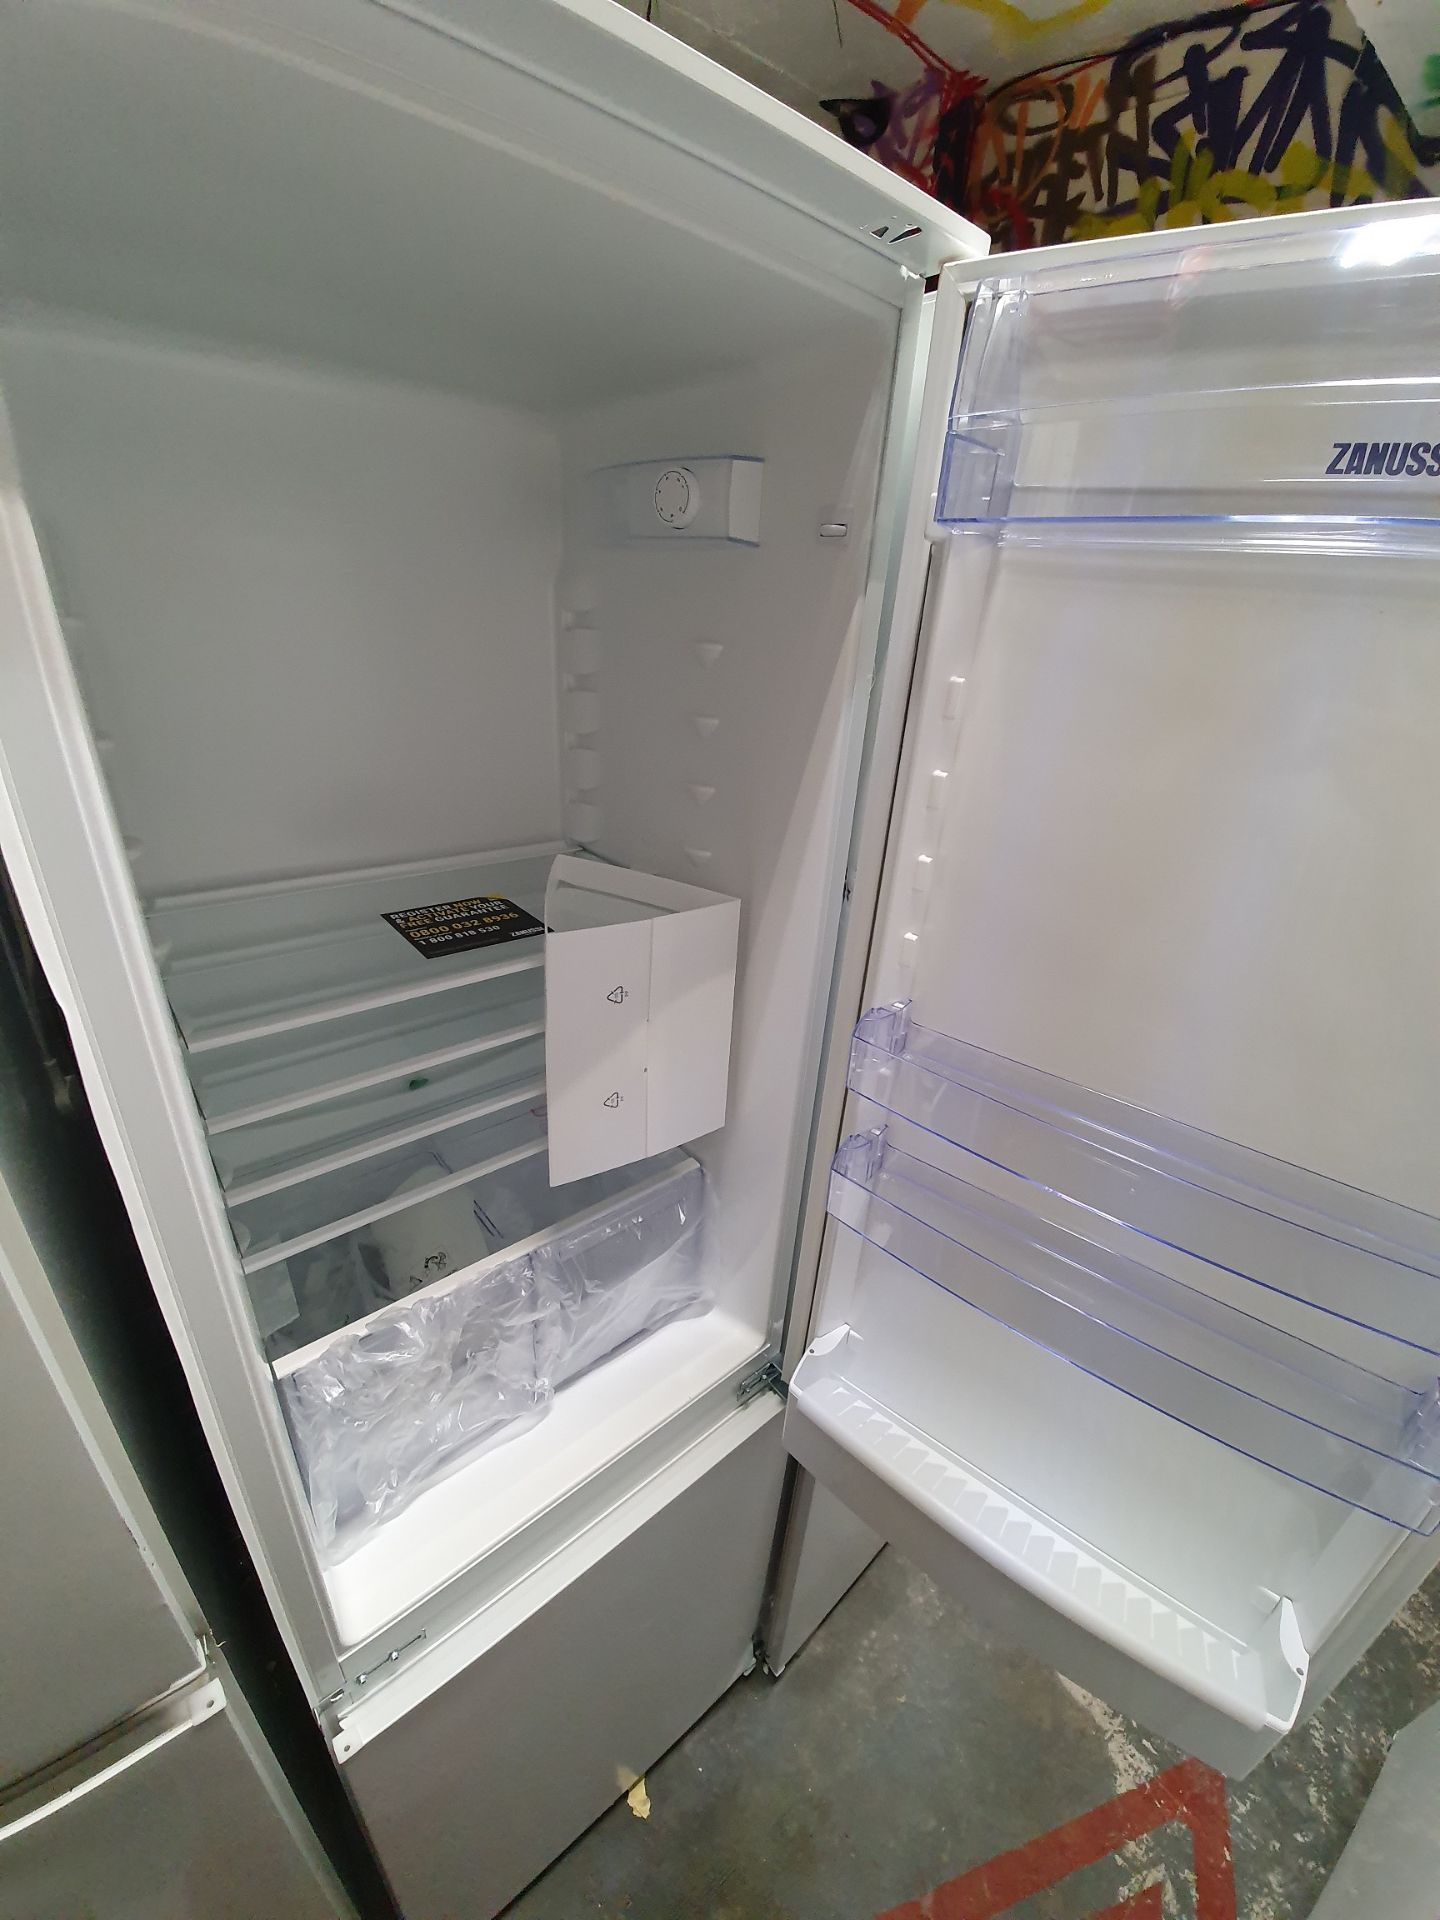 NEW/GRADED AND UNPACKAGED Prima Plus PRRF700 Built In Frost Free Fridge Freezer (Brand new slight - Image 9 of 14